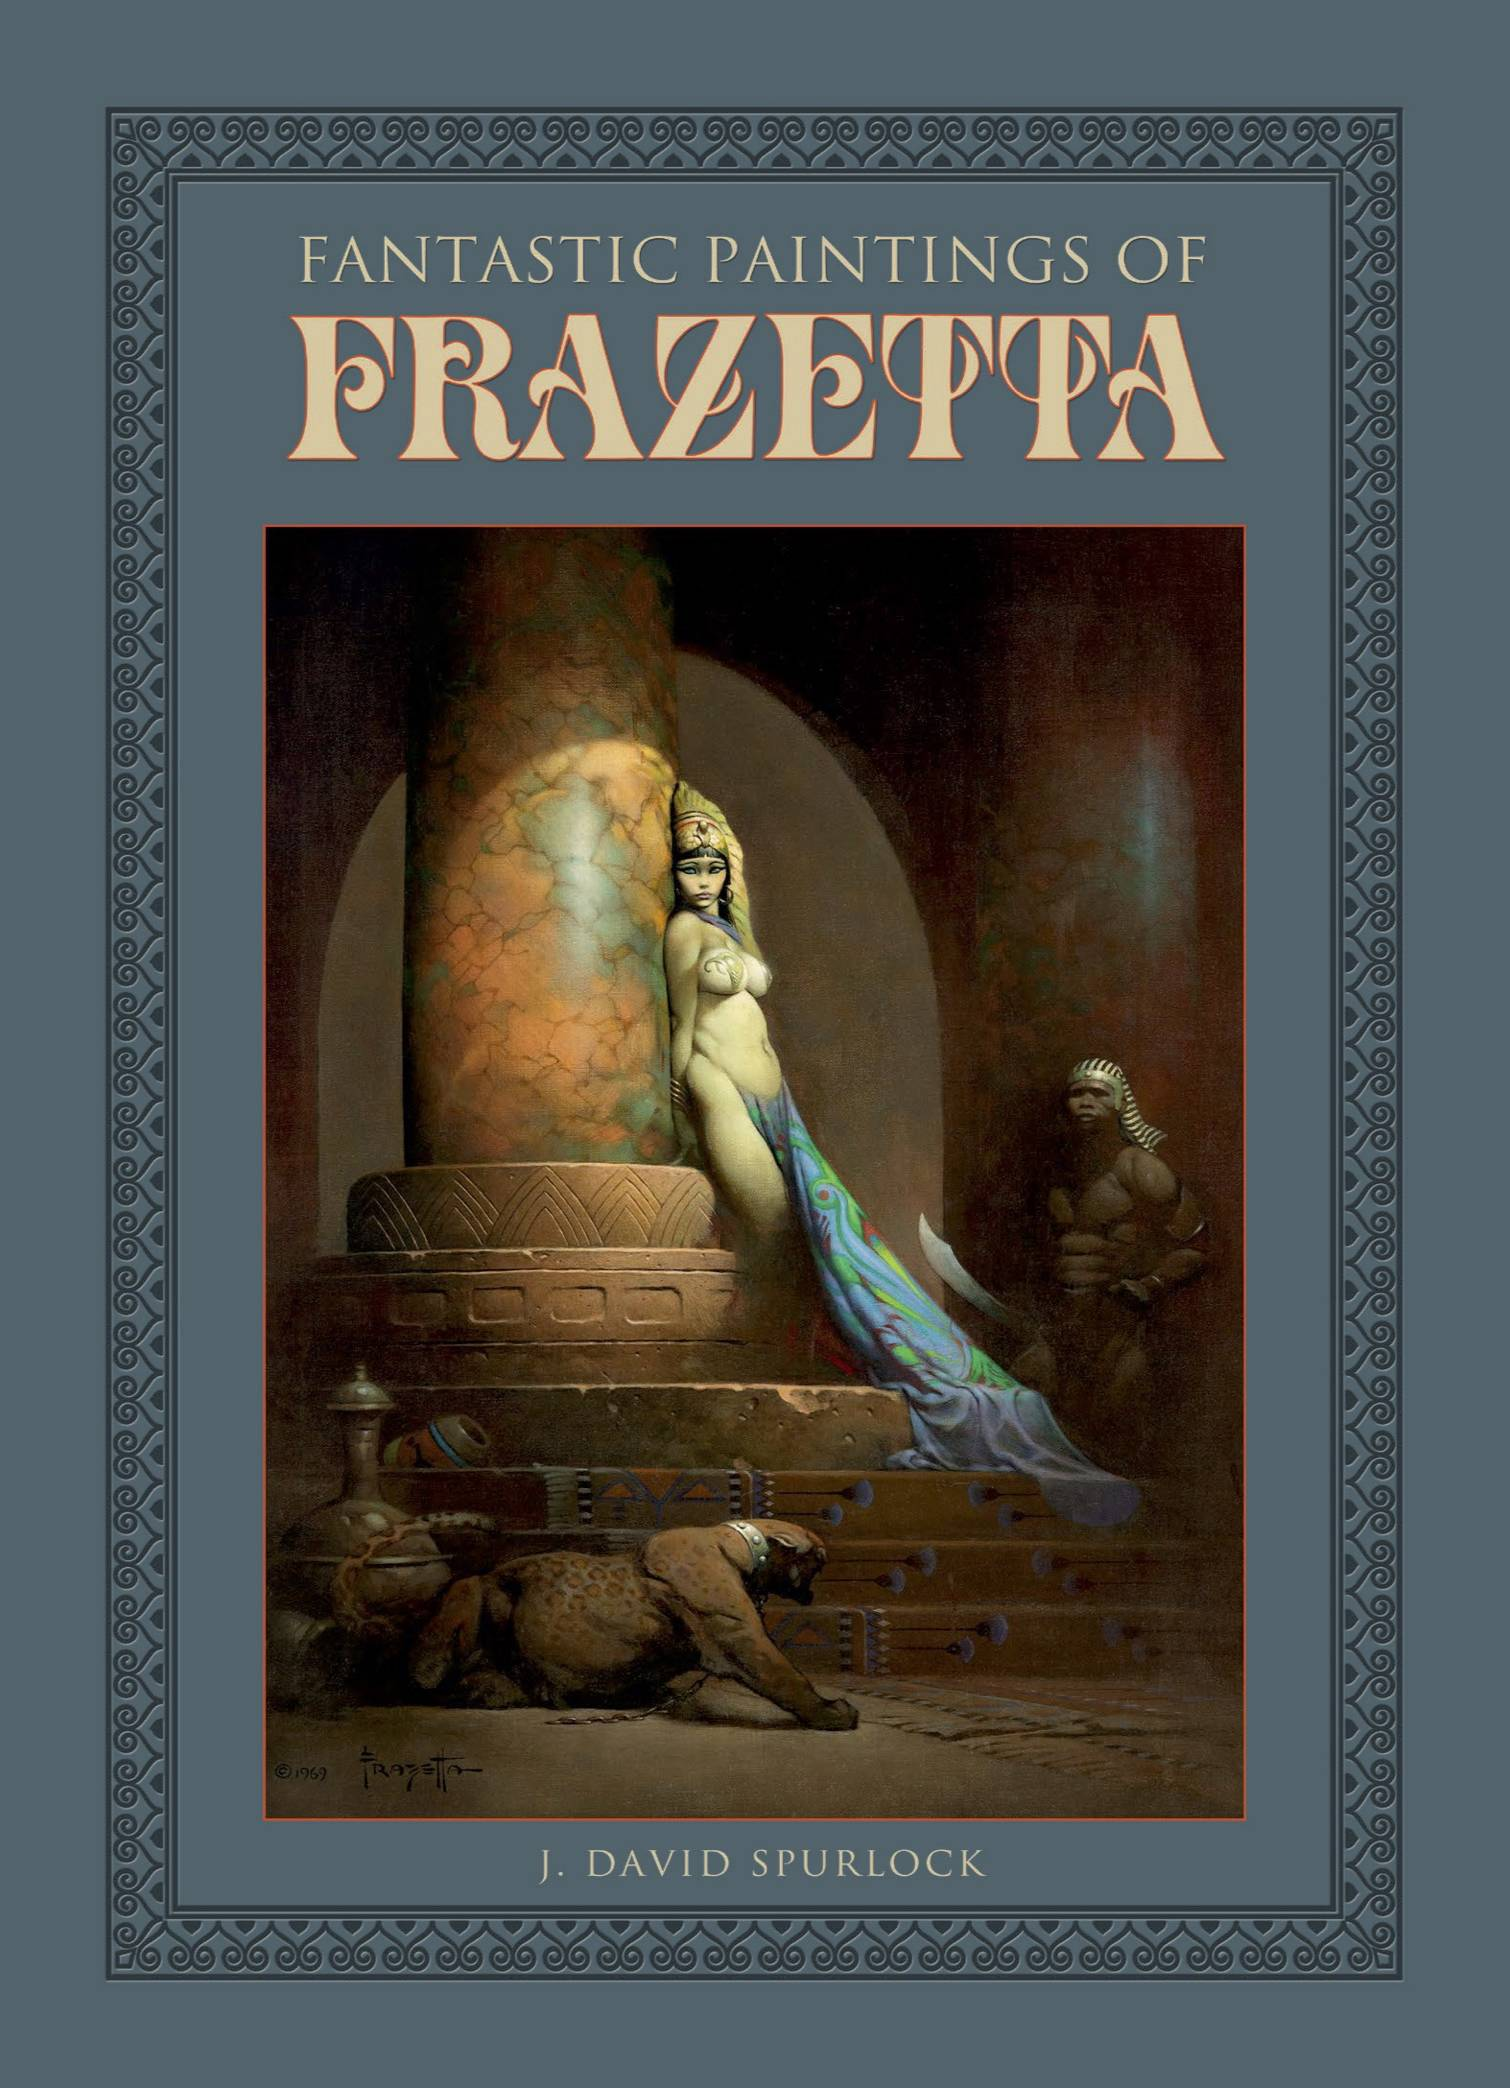 FANTASTIC PAINTINGS OF FRAZETTA HC 2ND PTG (O/A)